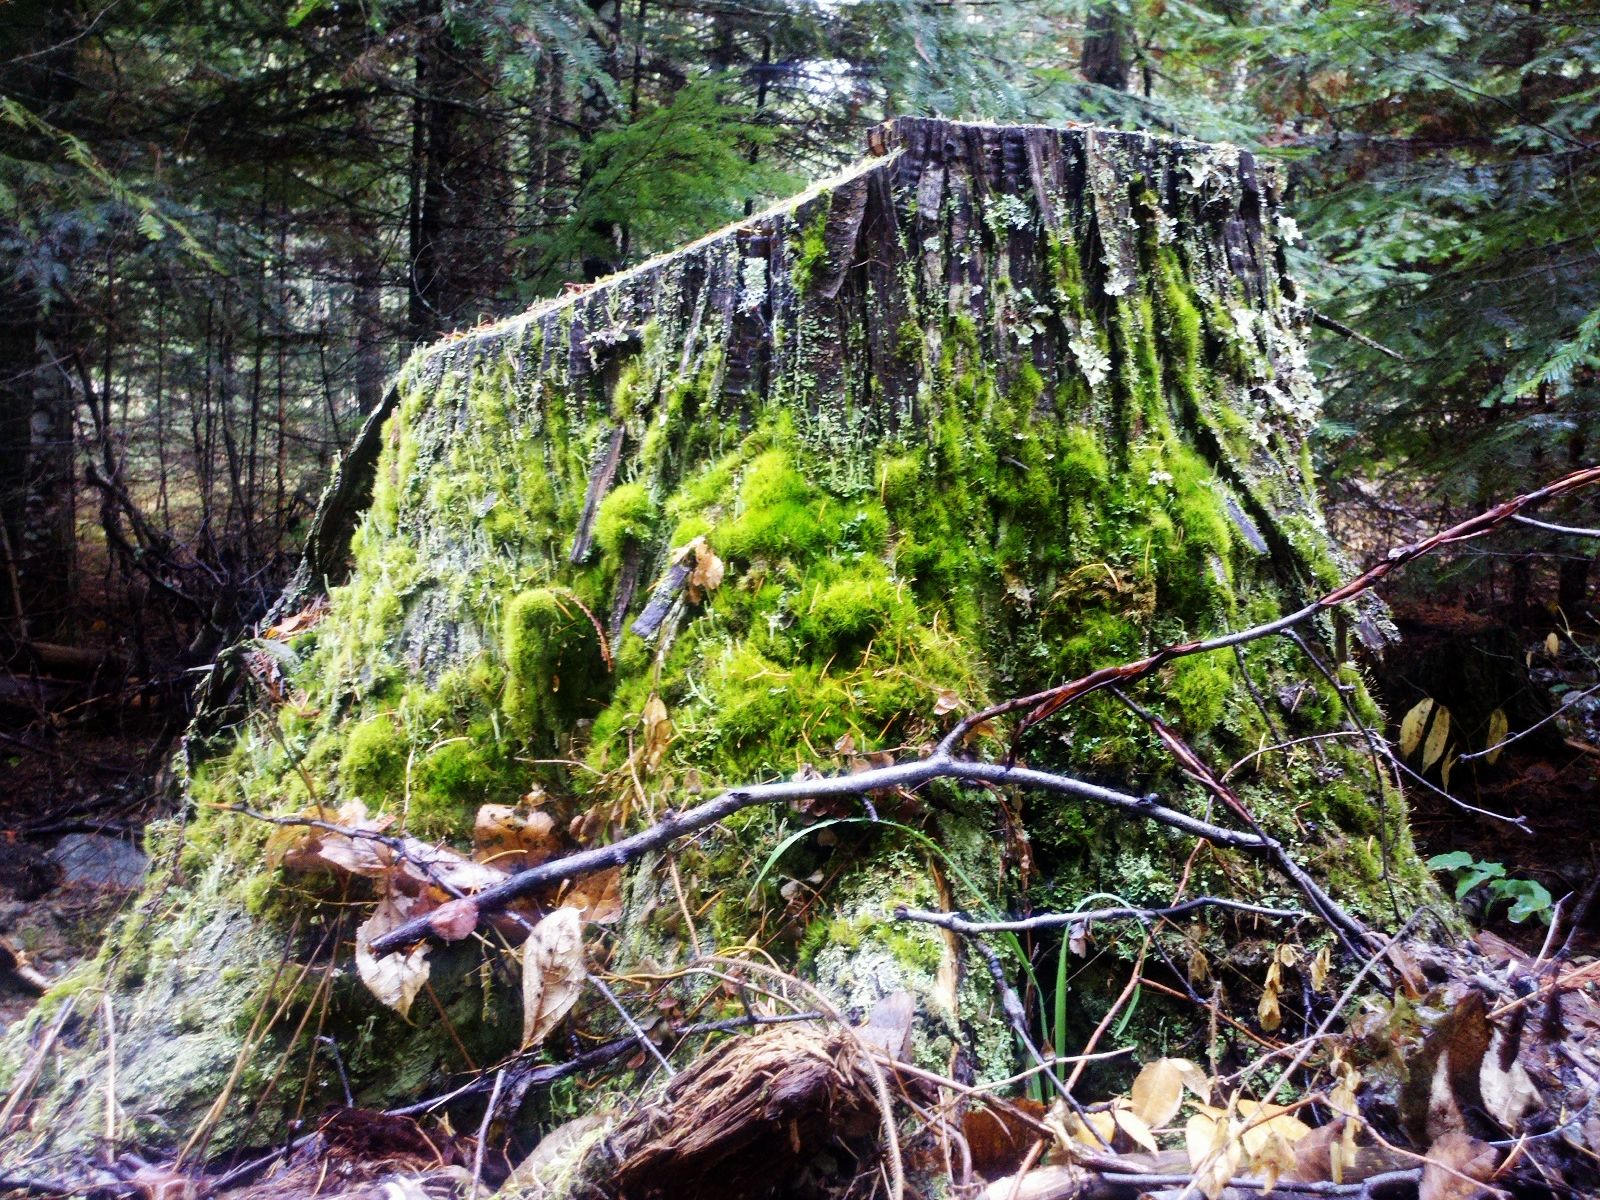 Mossy stump I can see from my driveway.